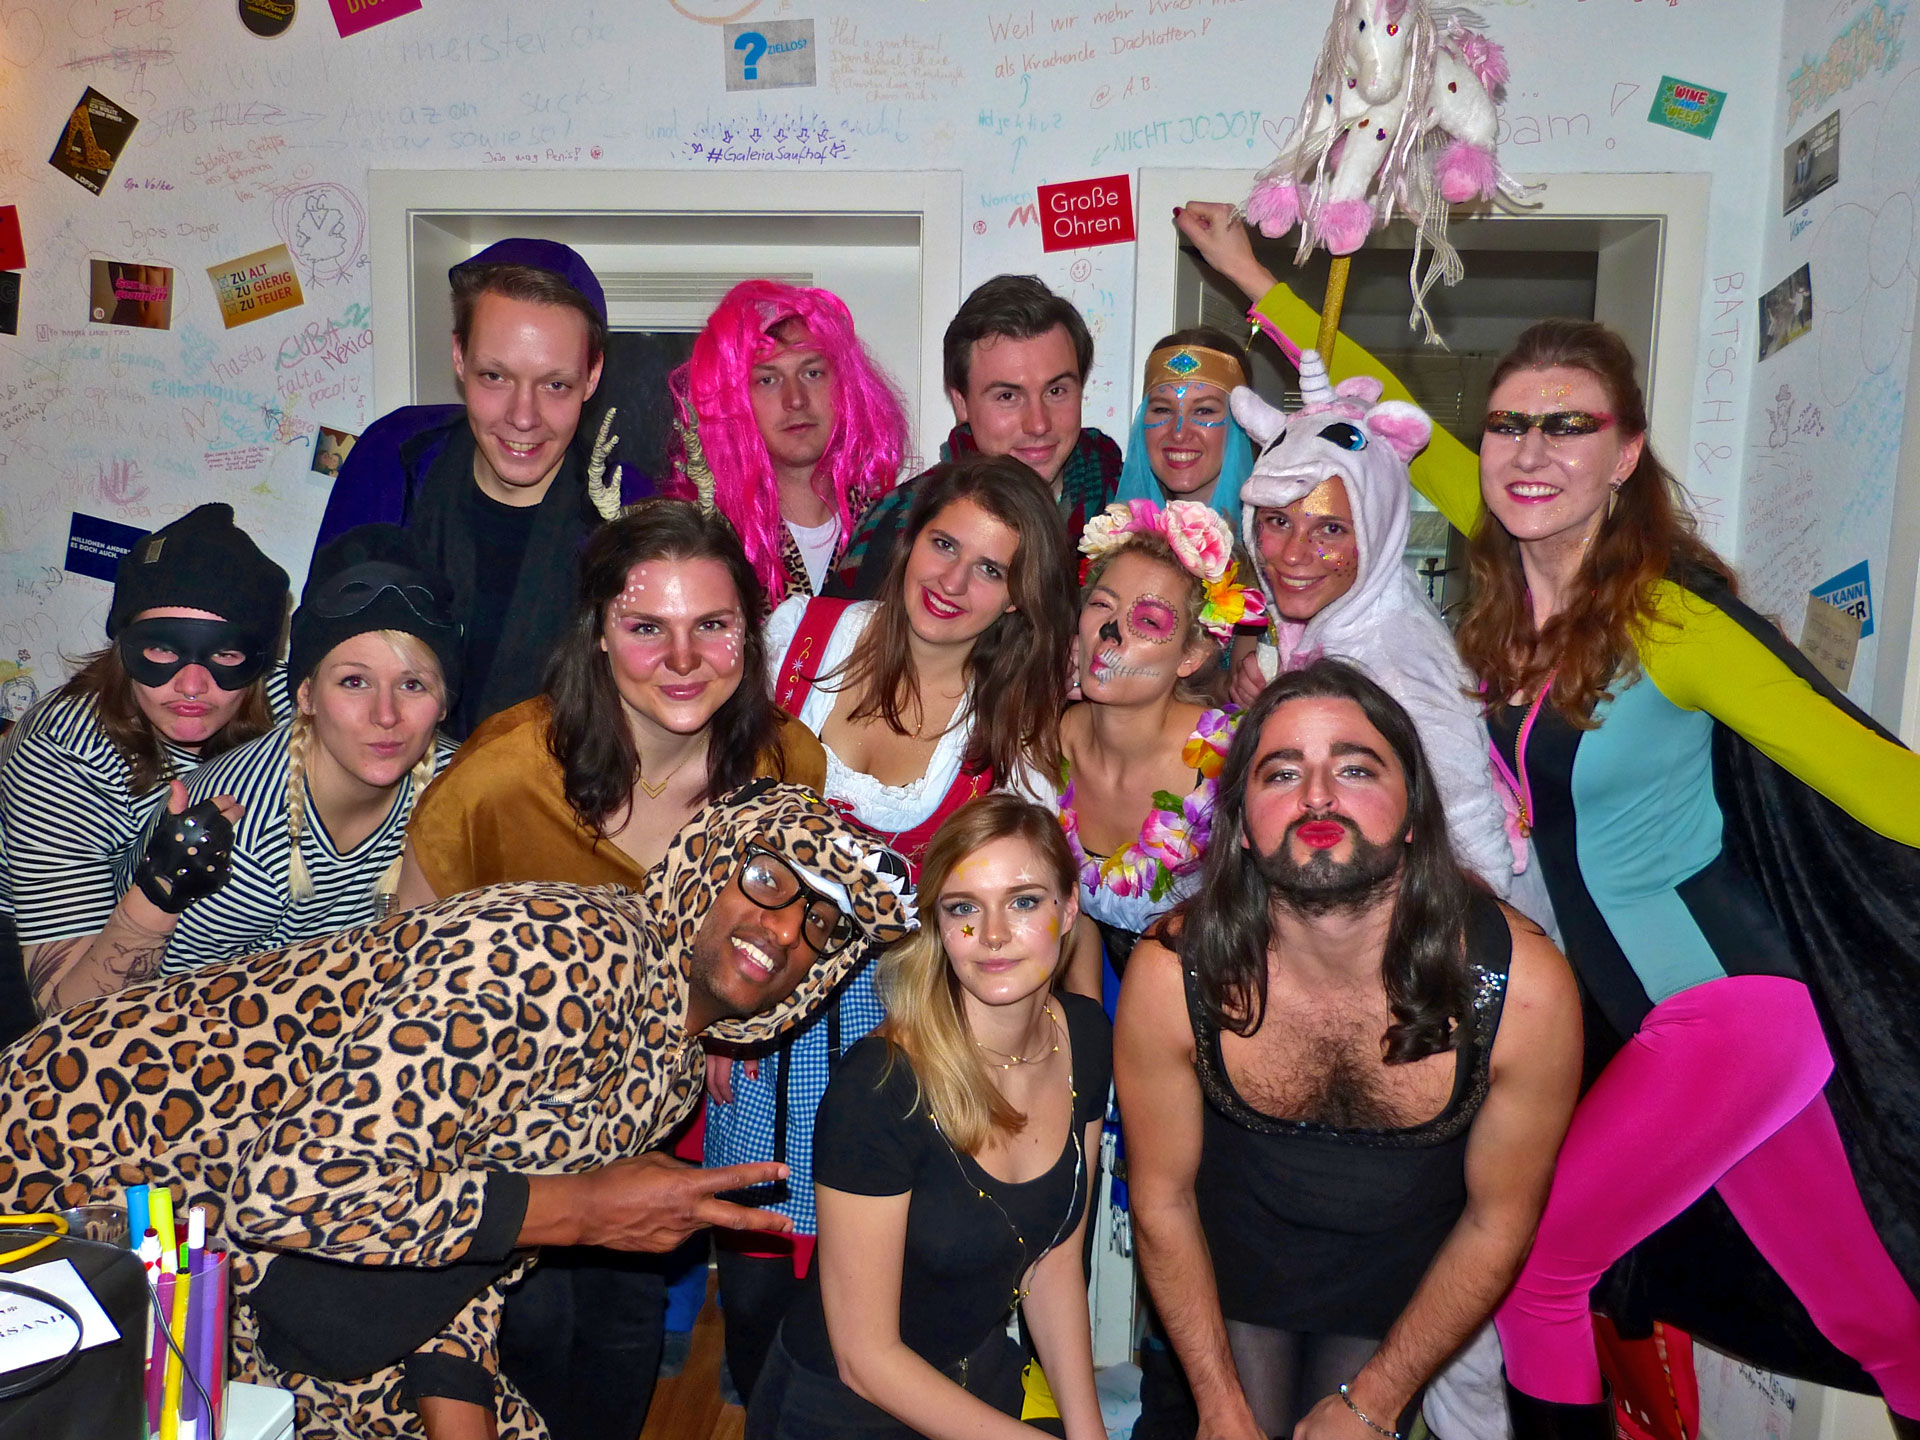 Friends and couchsurfers in different costumes celebrating carnival in Cologne, Germany